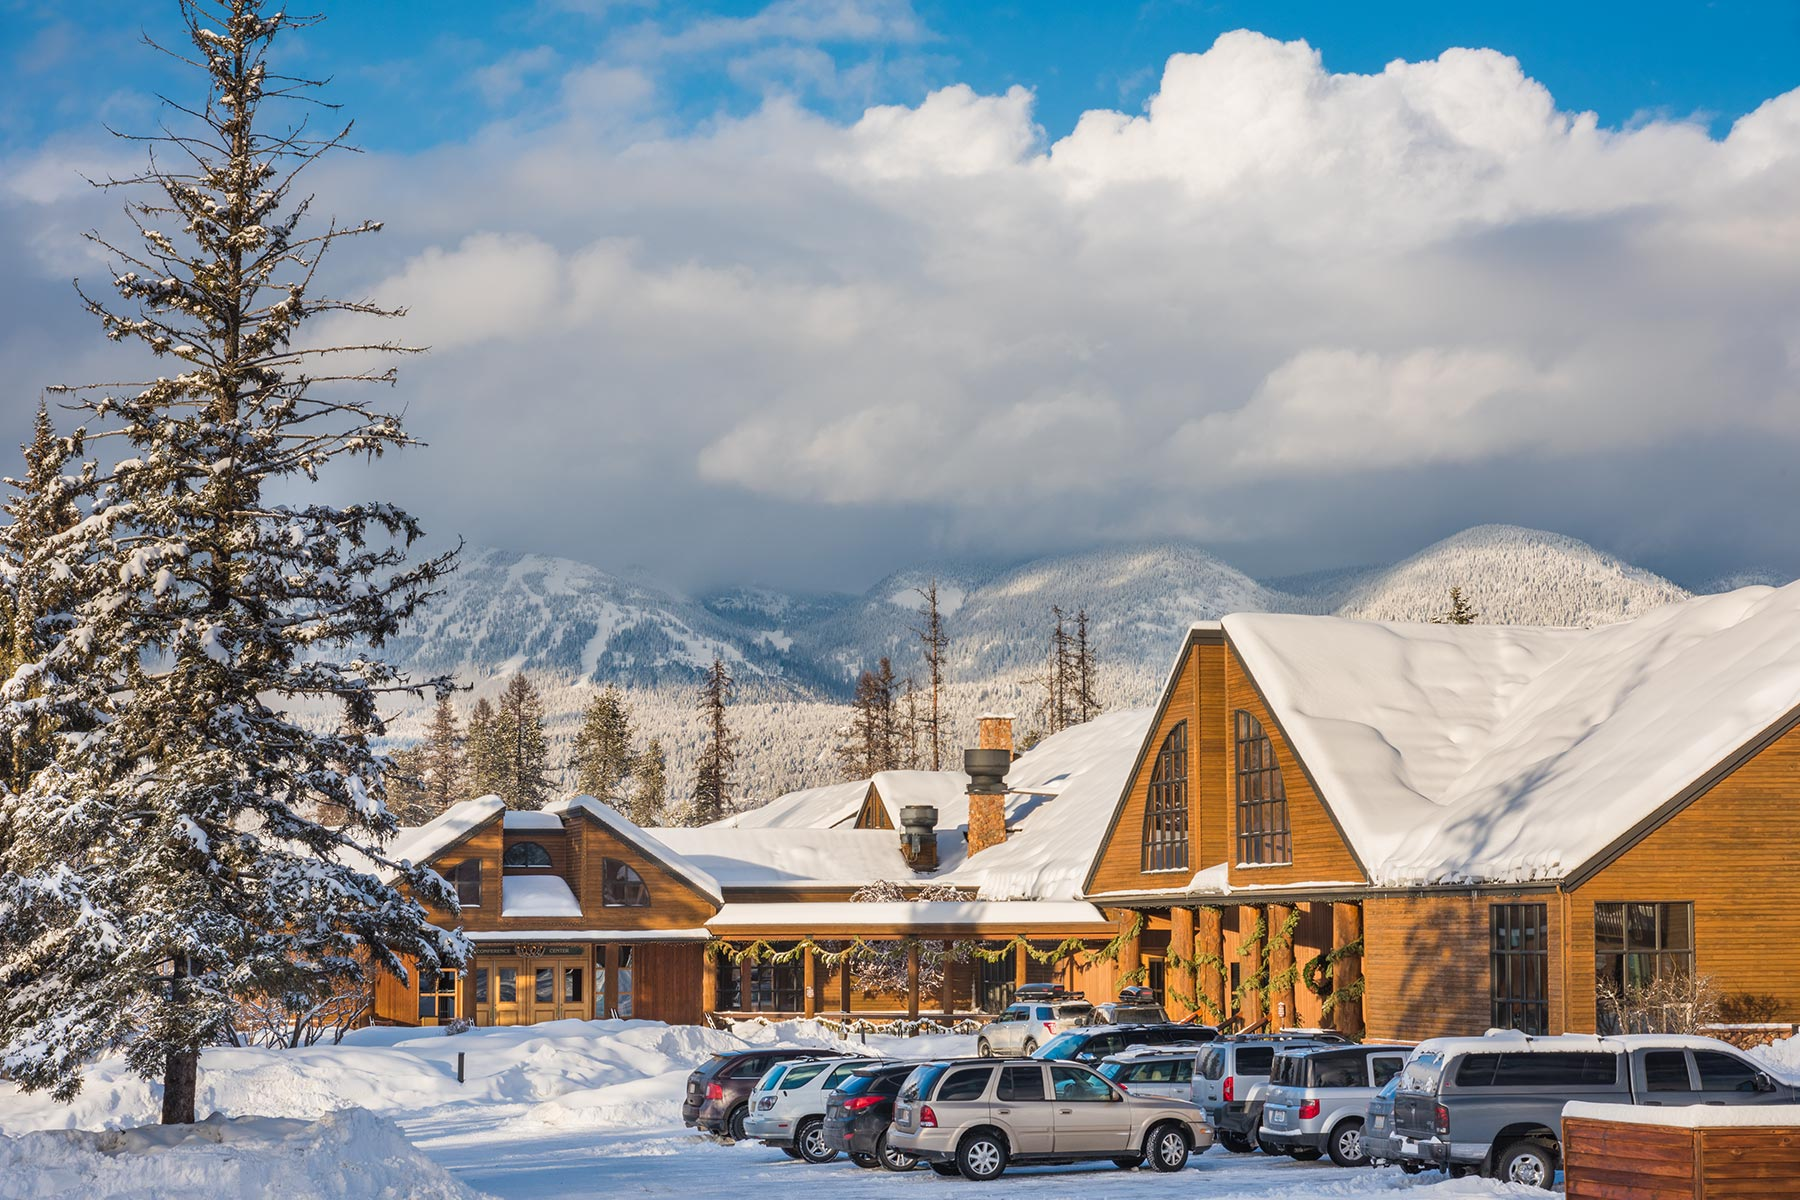 grouse mountain lodge: modern lodge style hotel in whitefish, mt